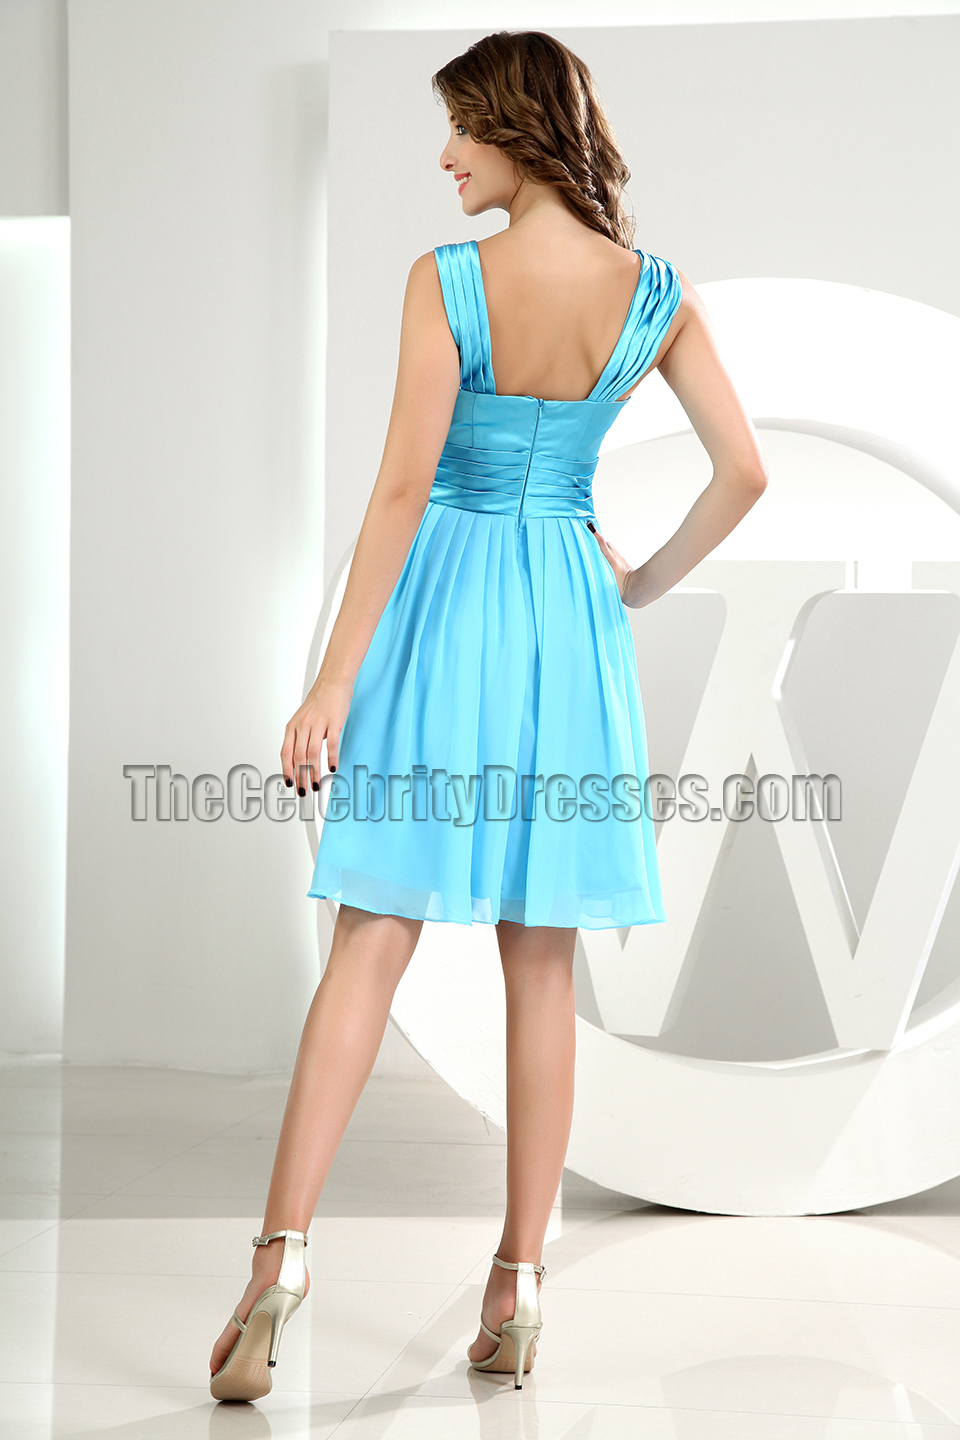 Discount Blue Short Party Graduation Homecoming Dresses ...